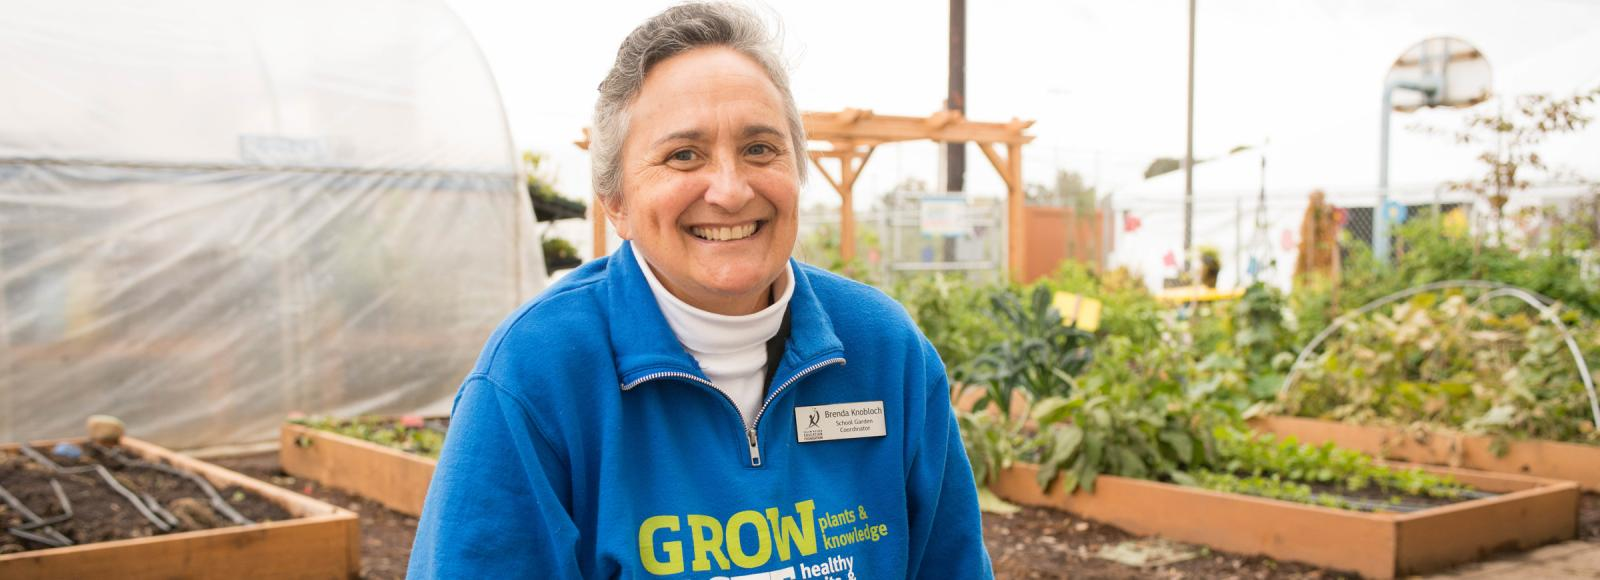 a woman sits on a bench inside a greenhouse wearing a bright blue sweatshirt that reads